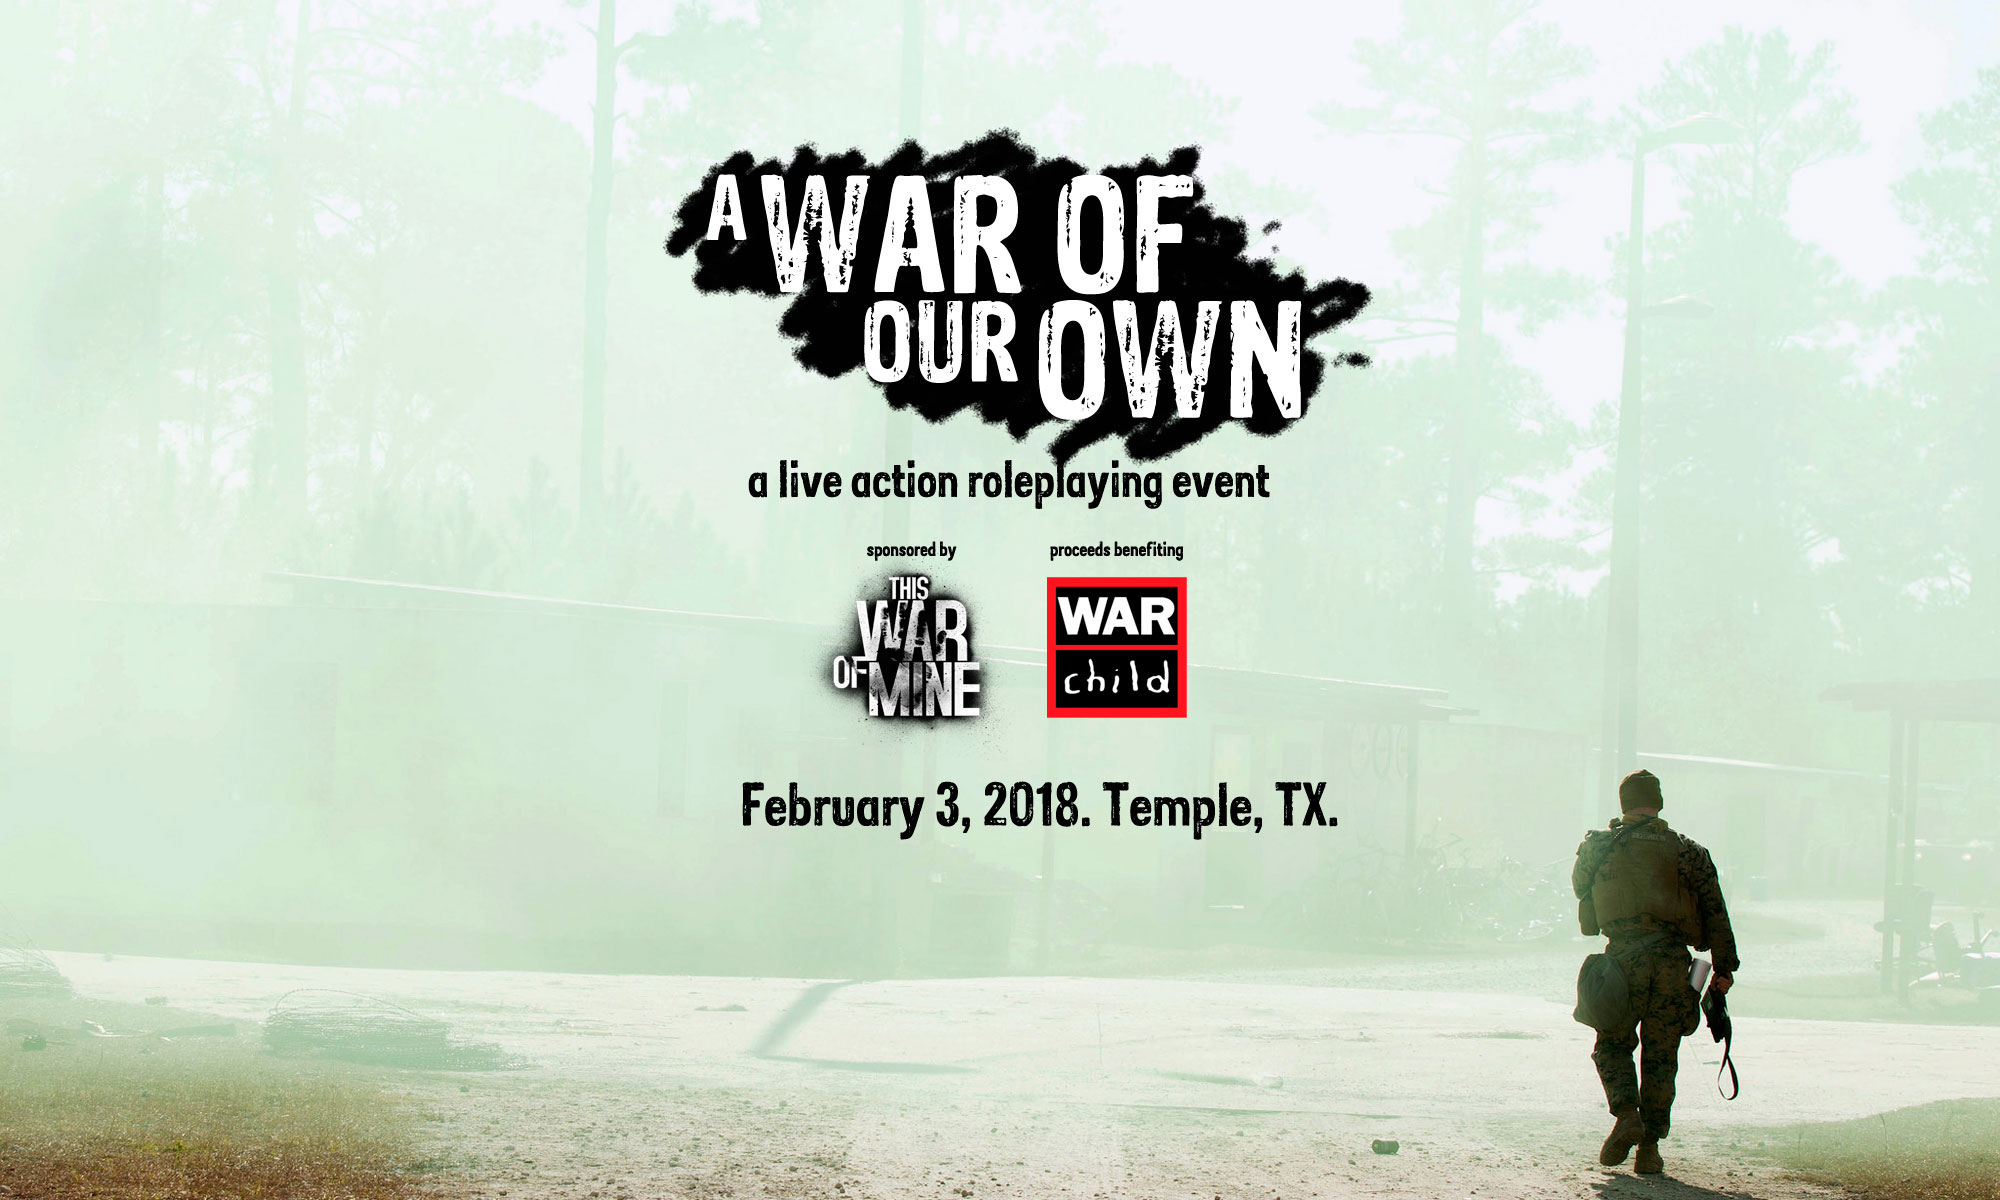 A War of Our Own